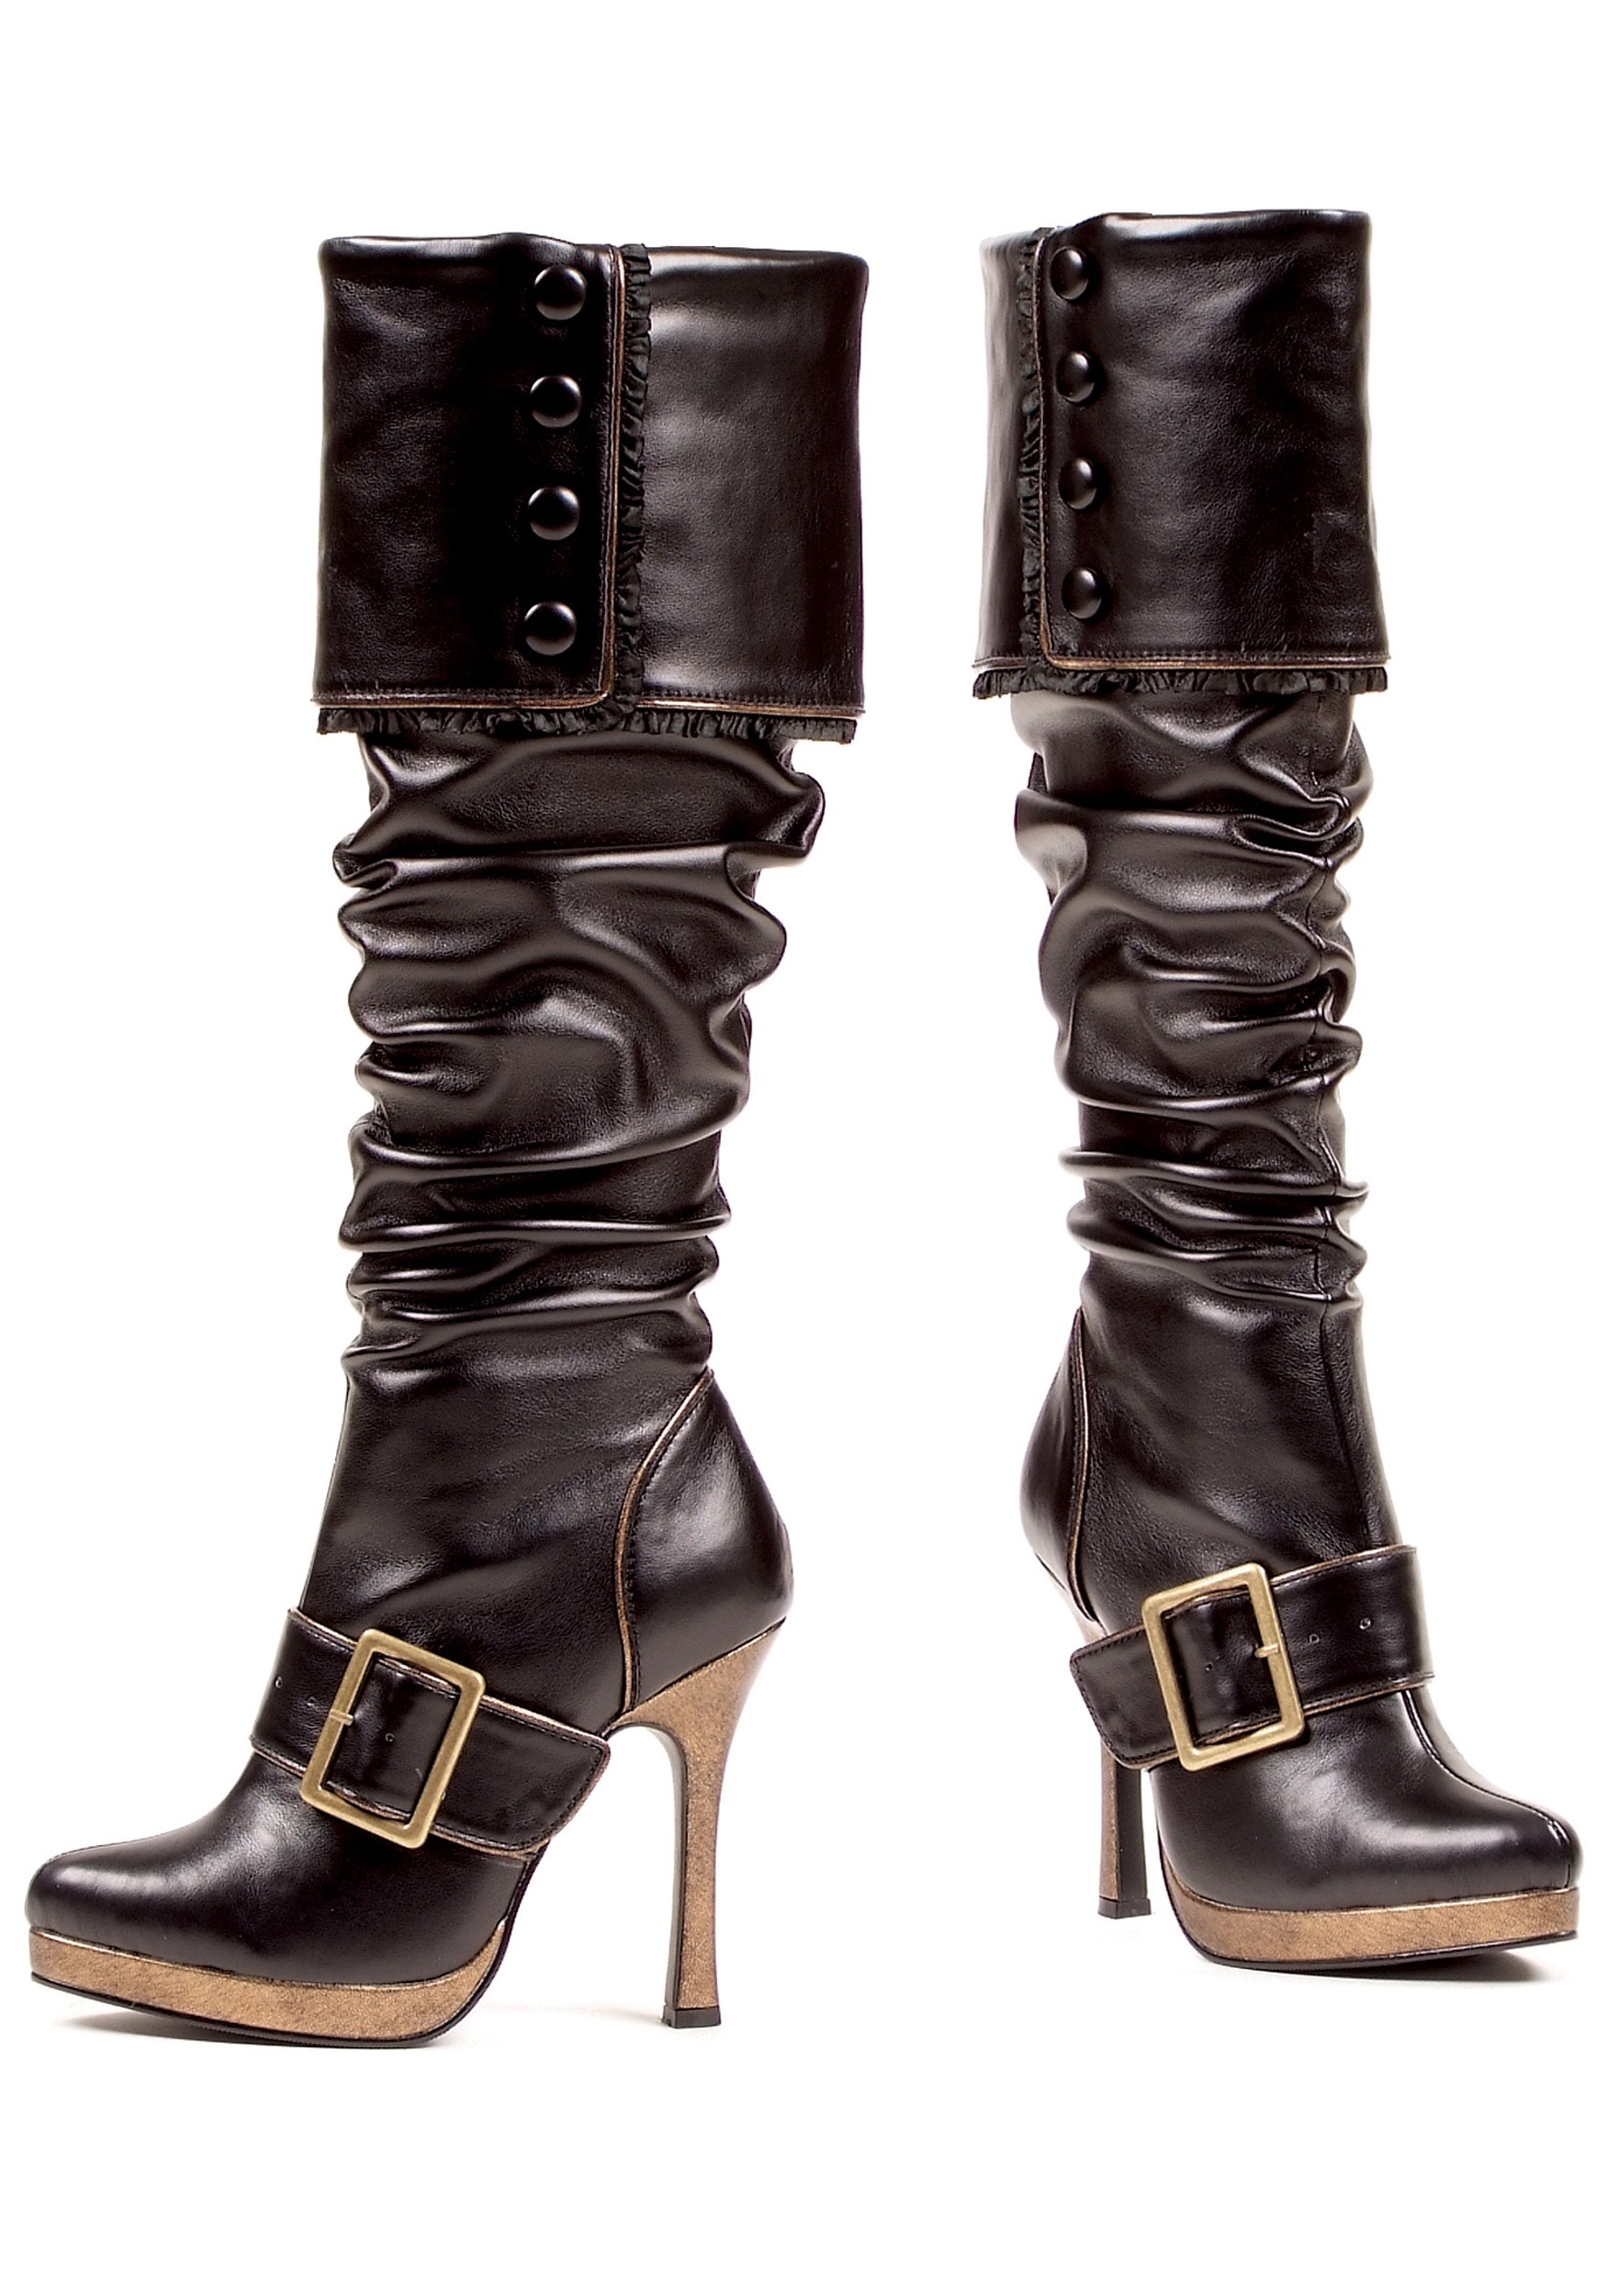 Women's Sexy Buckle Pirate Costume Boots